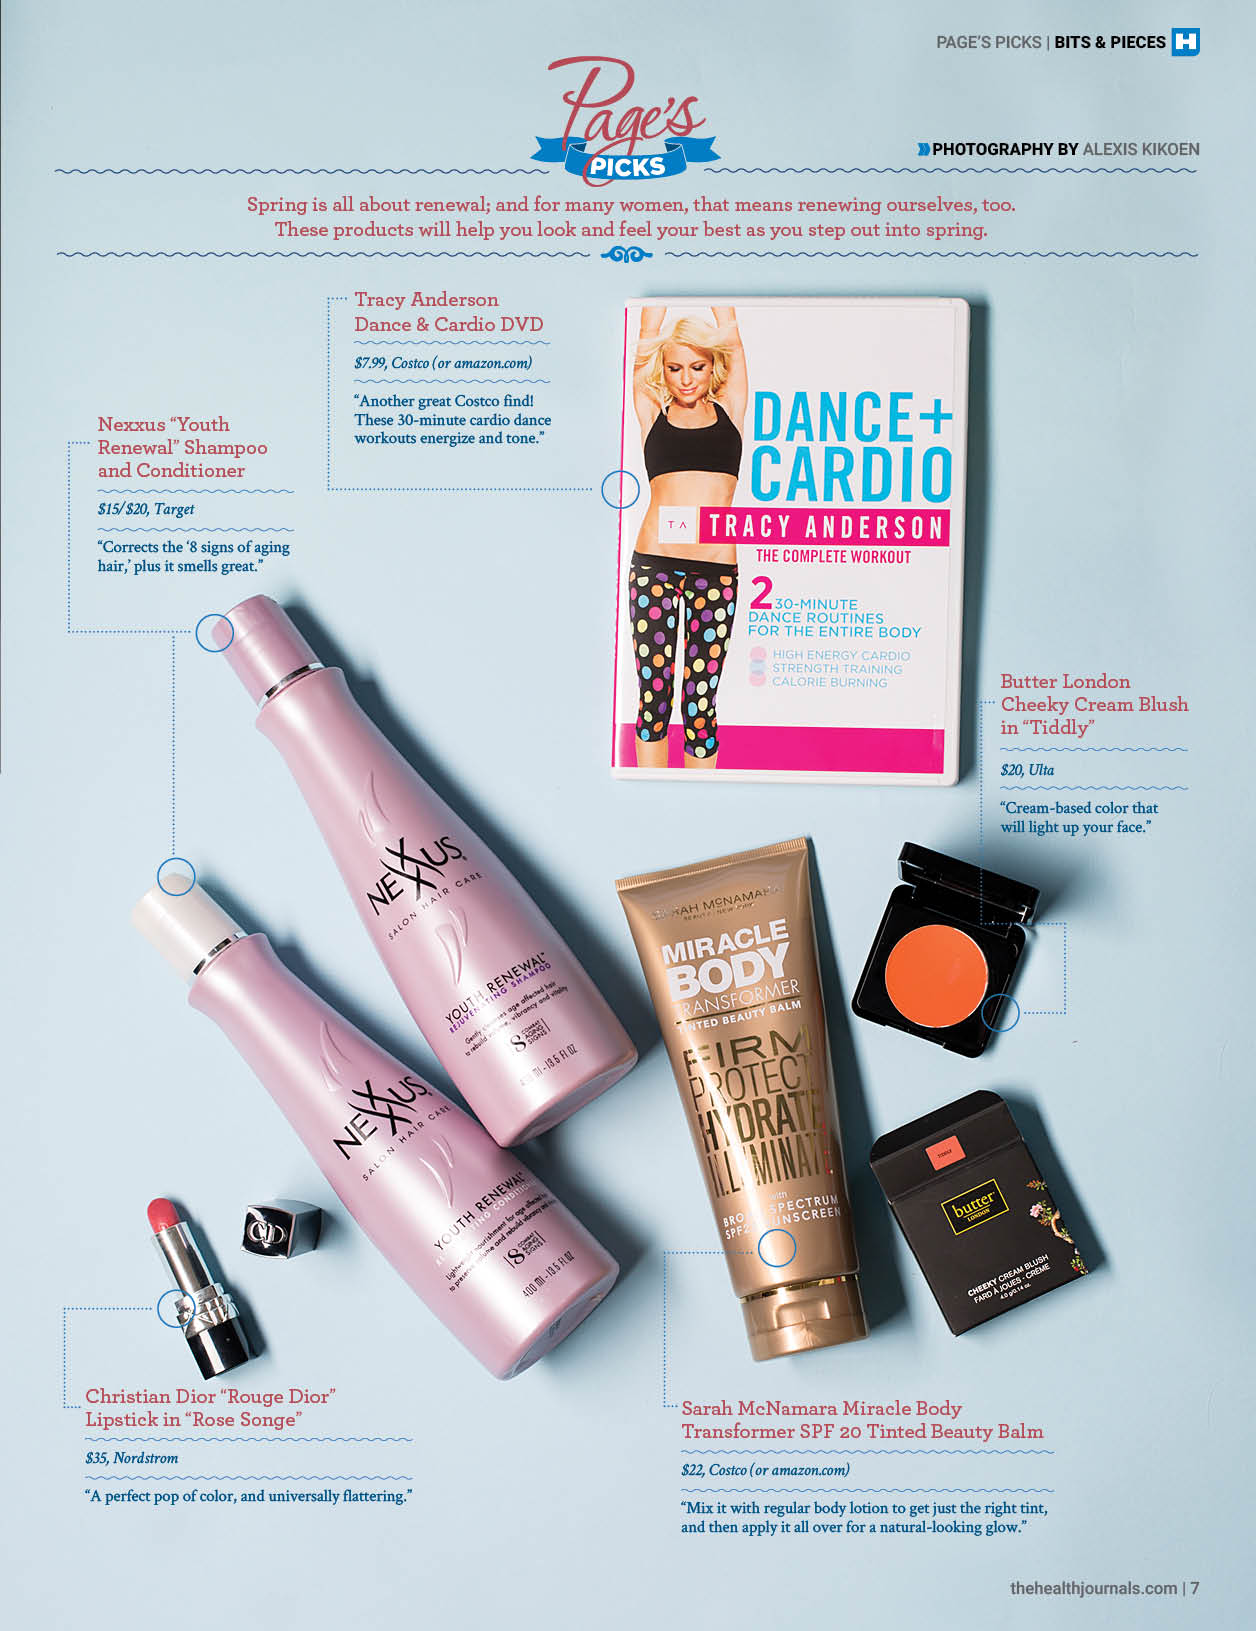 Page's Picks April 2015 - Spring Renewal Products